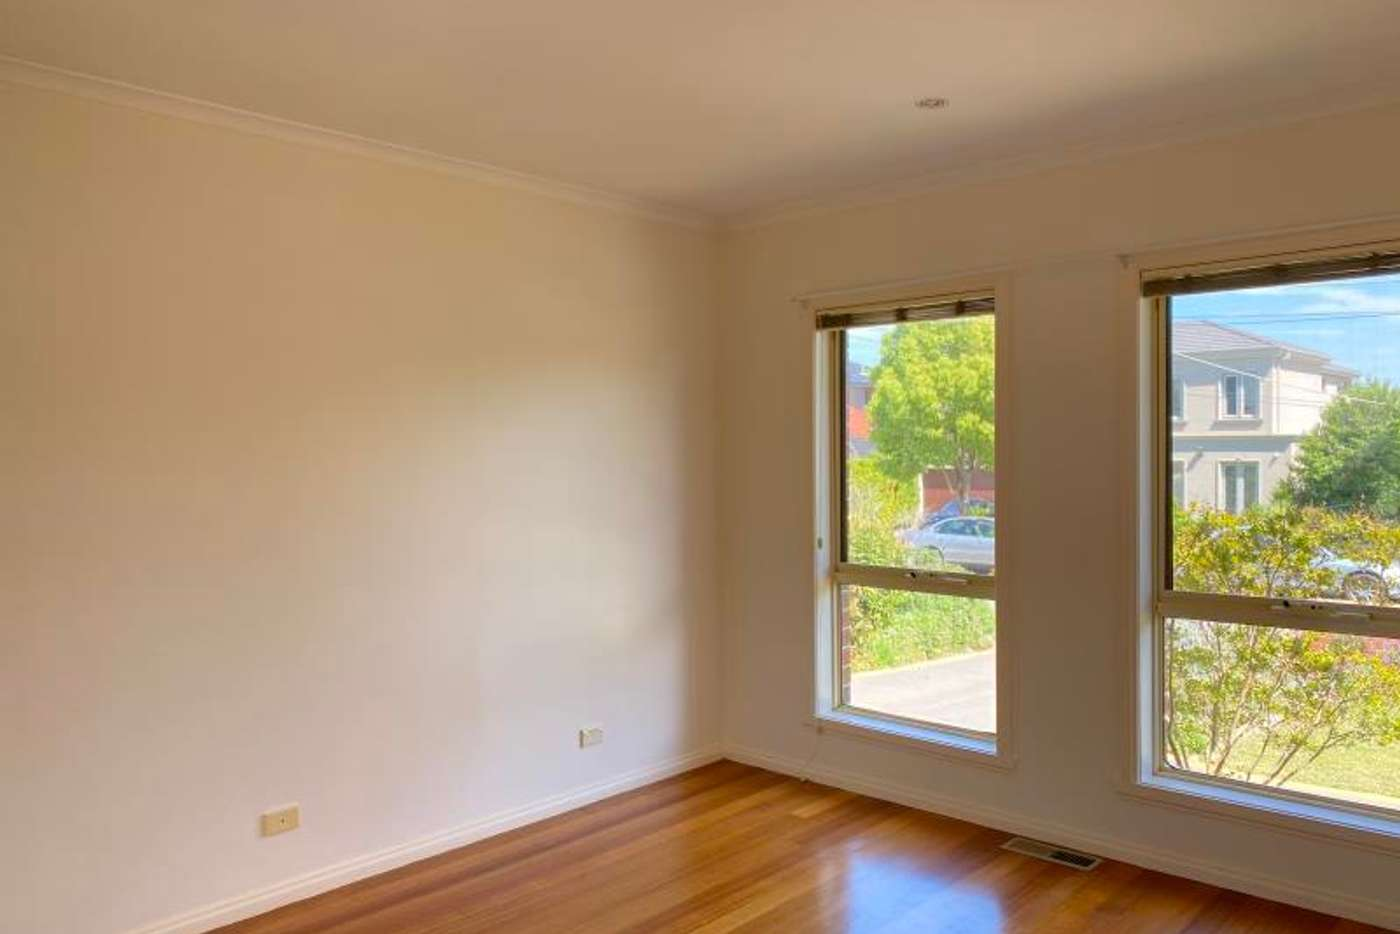 Fifth view of Homely house listing, 1/22 Sheffield Street, Preston VIC 3072